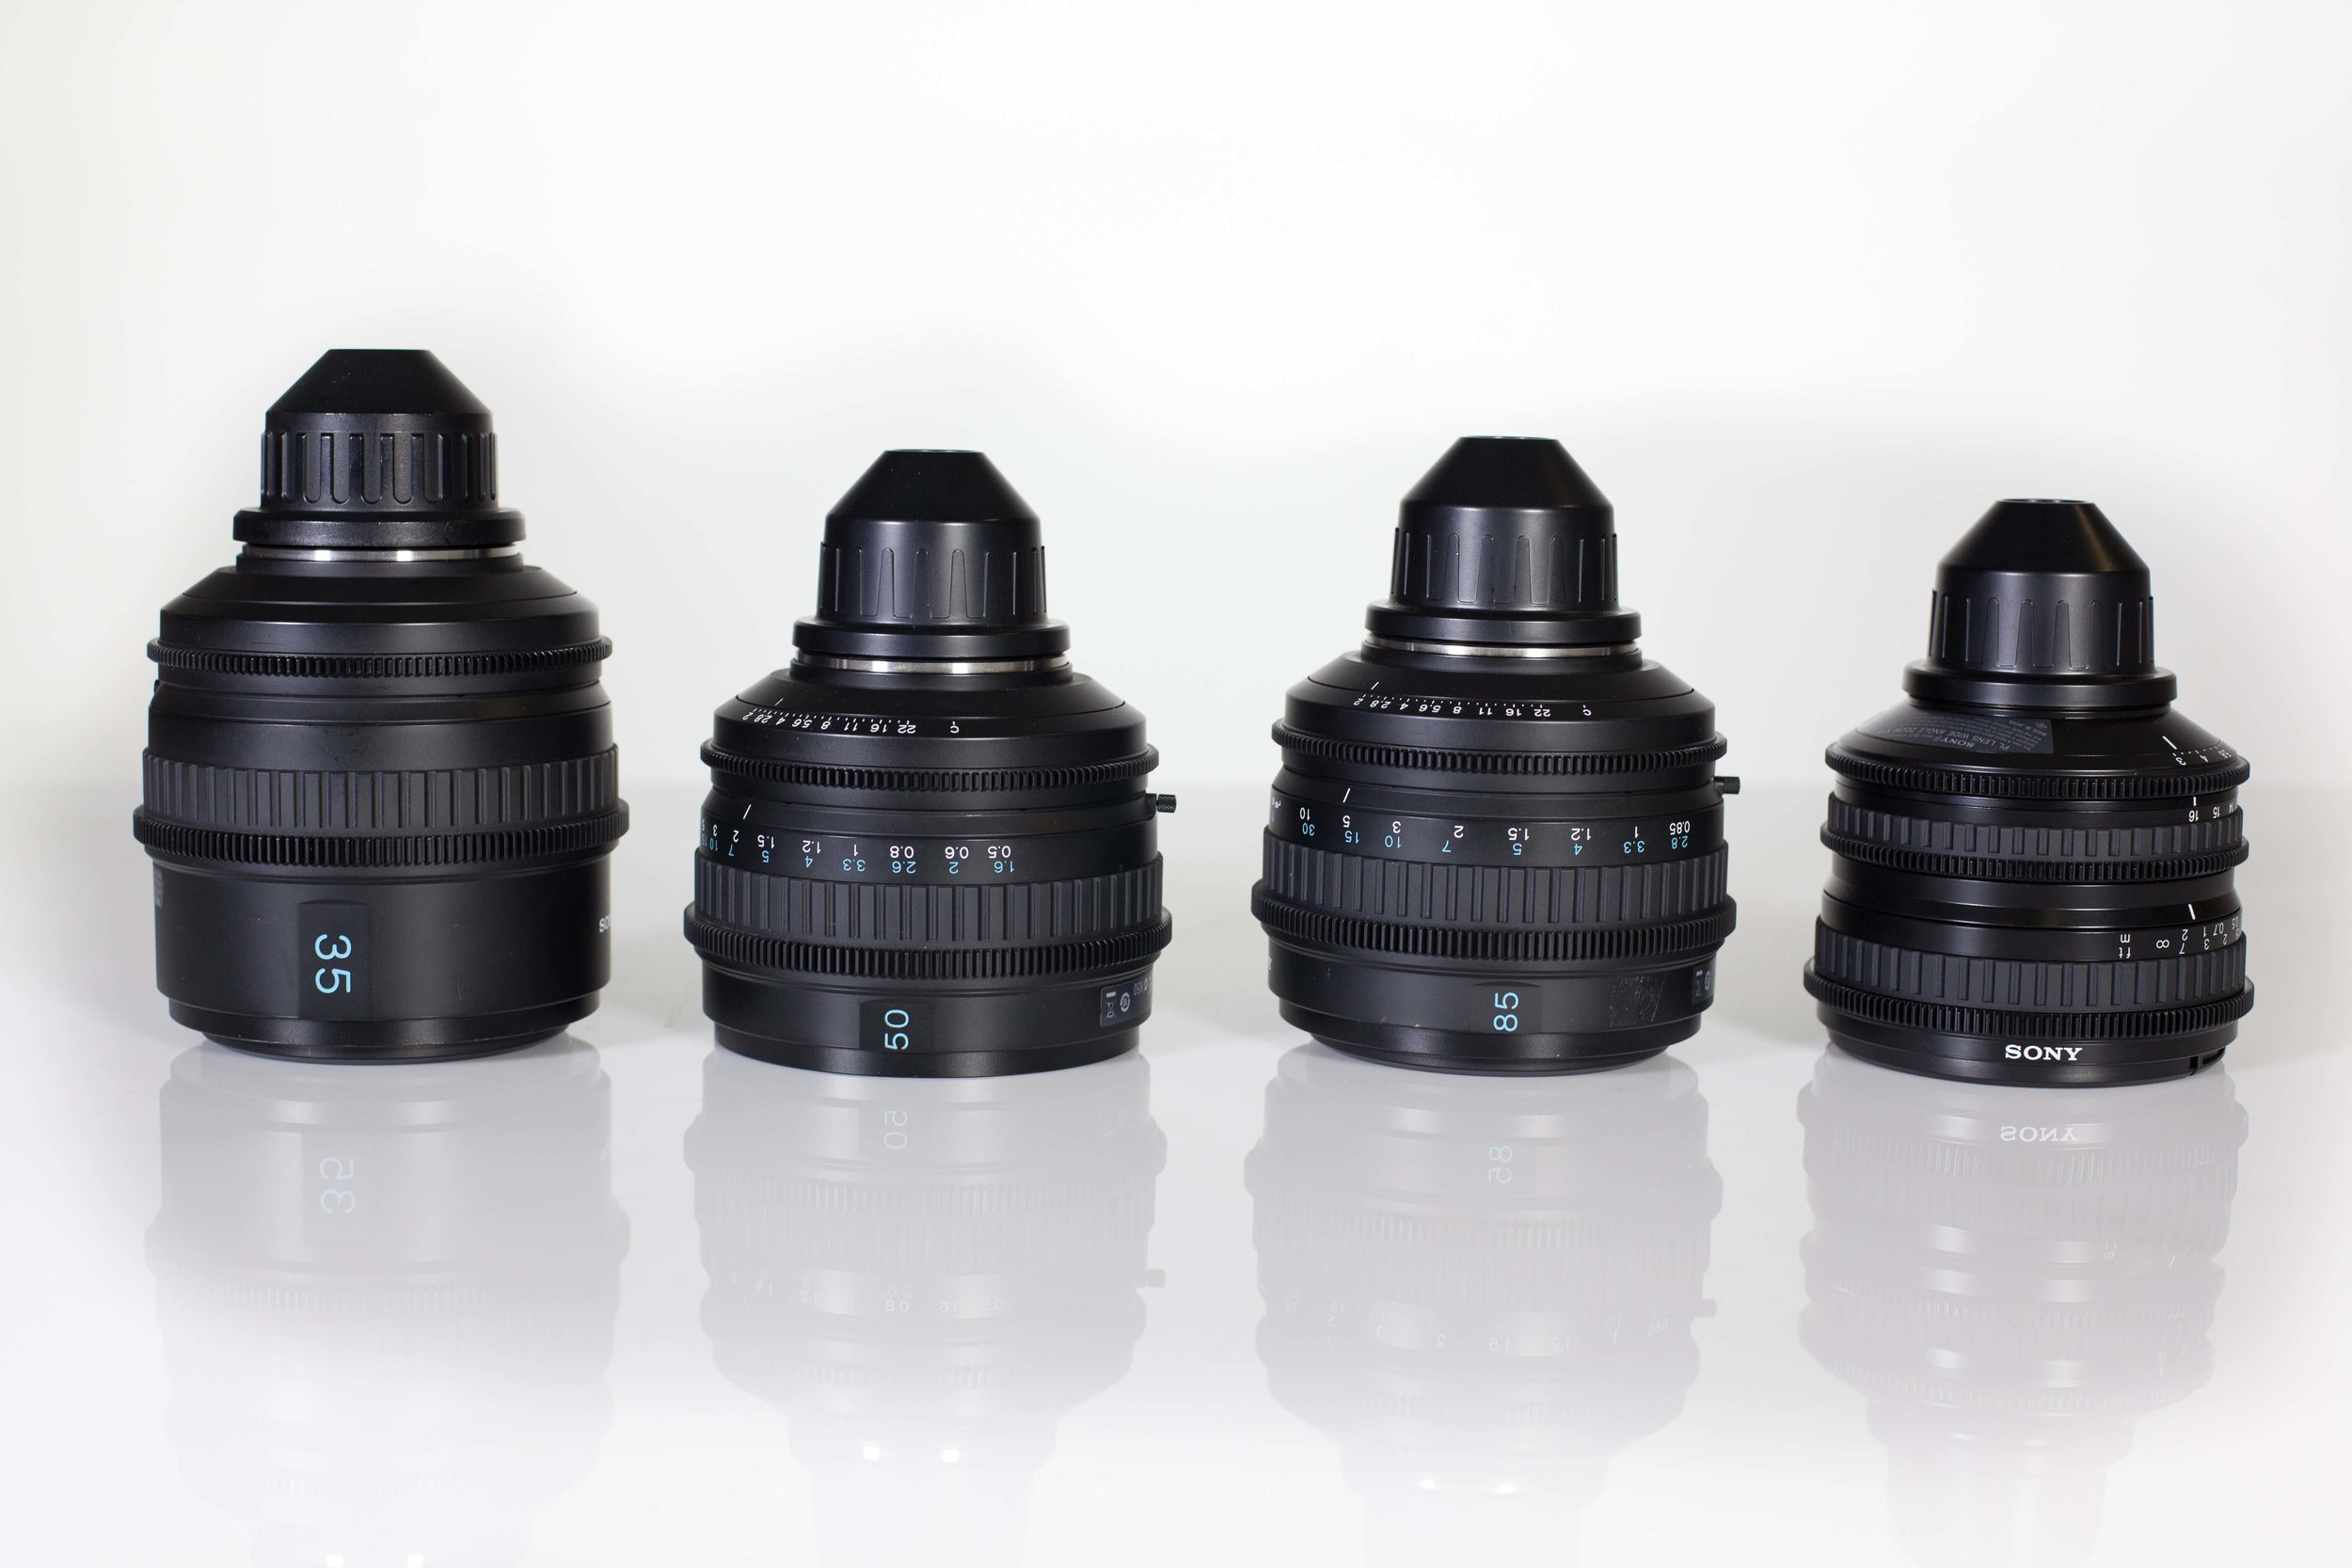 Sony SCL Prime Lenses - Sony's line of PL Mount Lenses, including: 35mm, 50mm, 85mm and 11-16mm